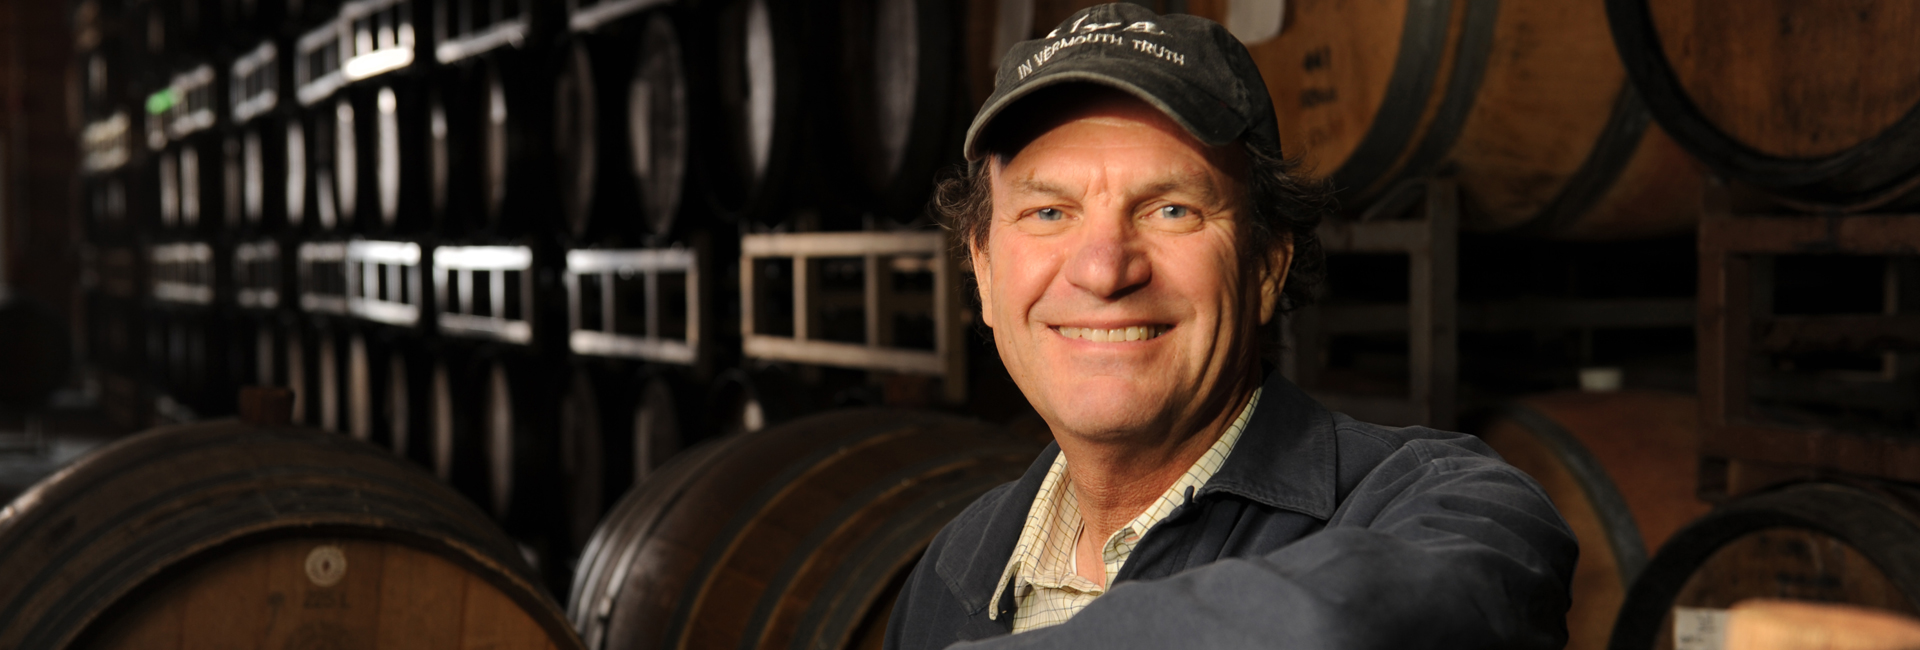 Andrew Quady standing in front of wine barrels